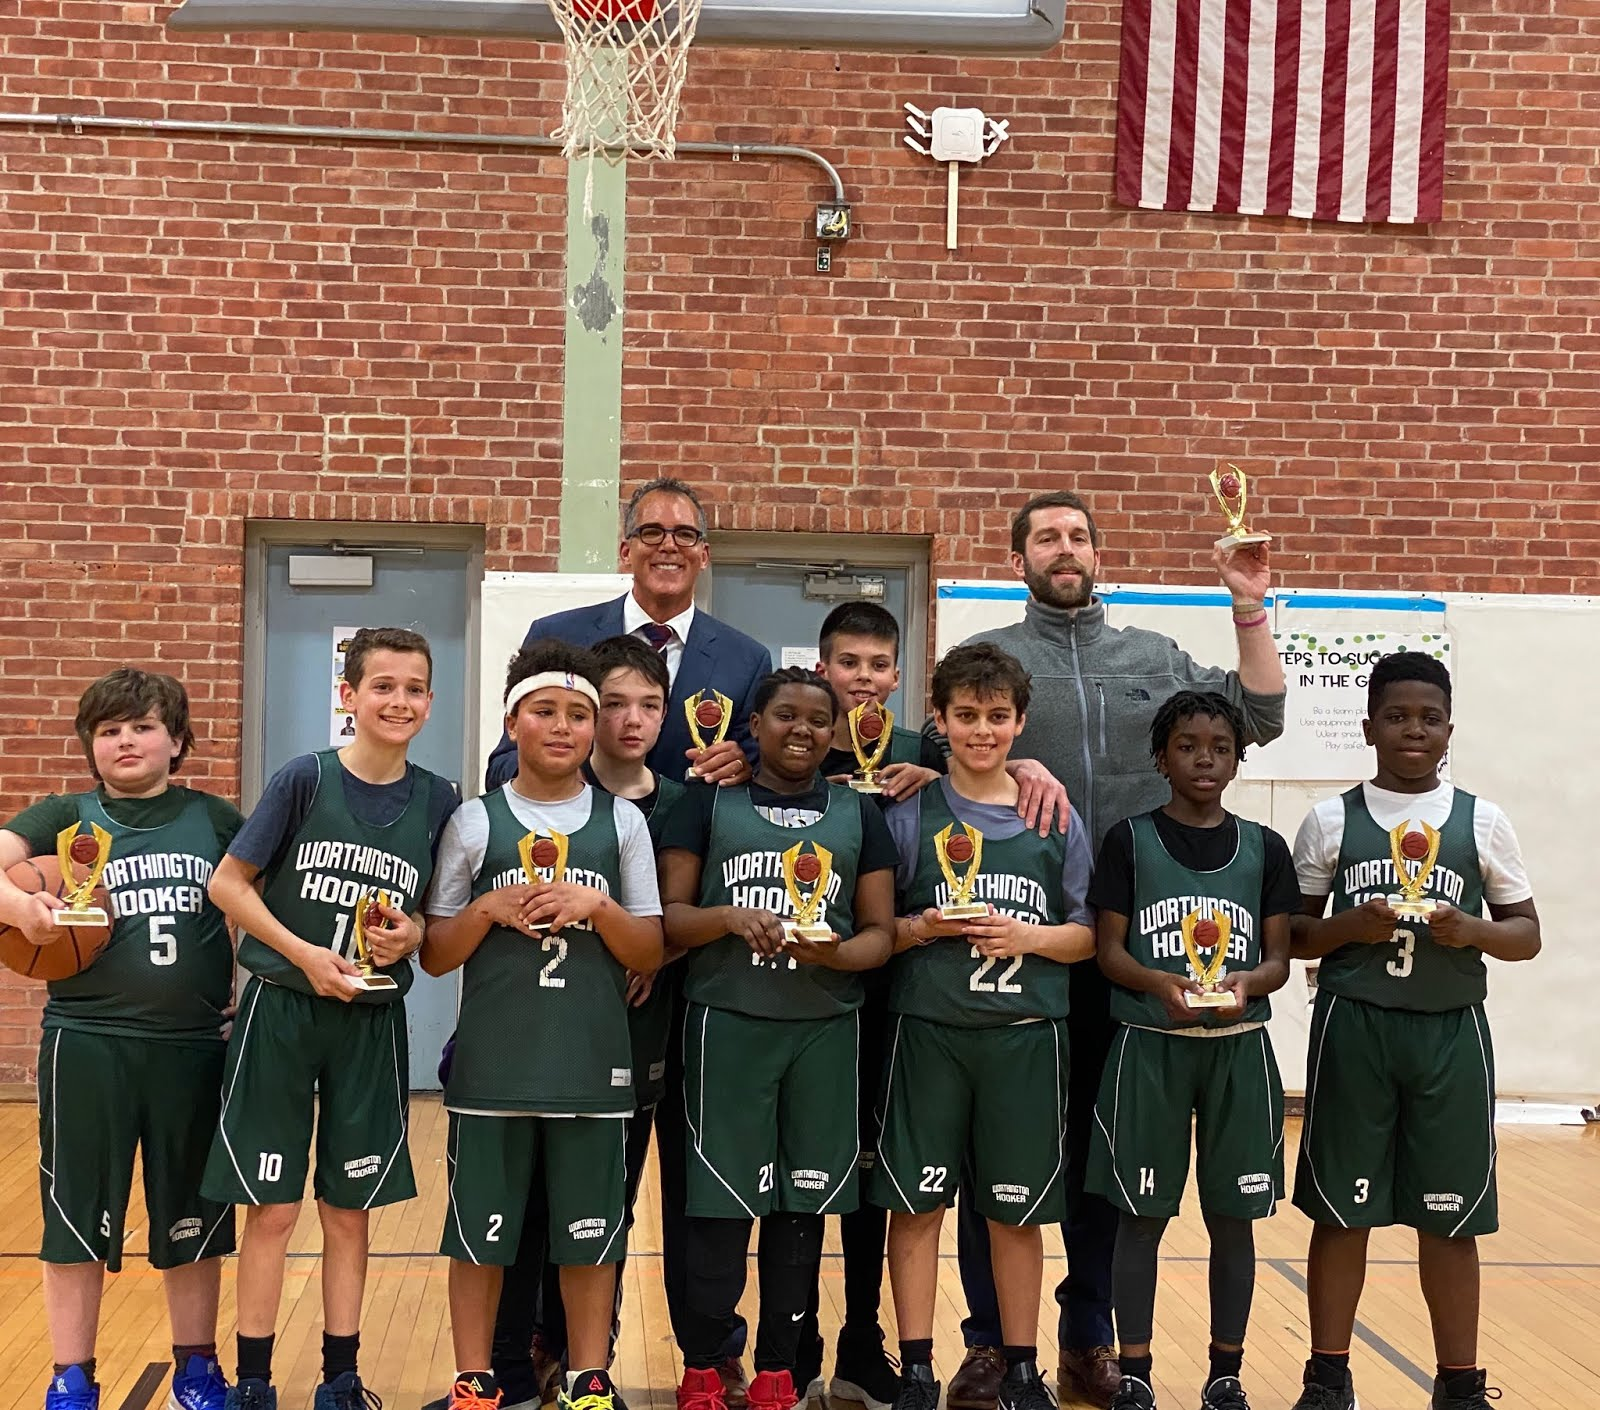 WHBA Grades 5-6 Team Mark Division Title in City League, 2019-20